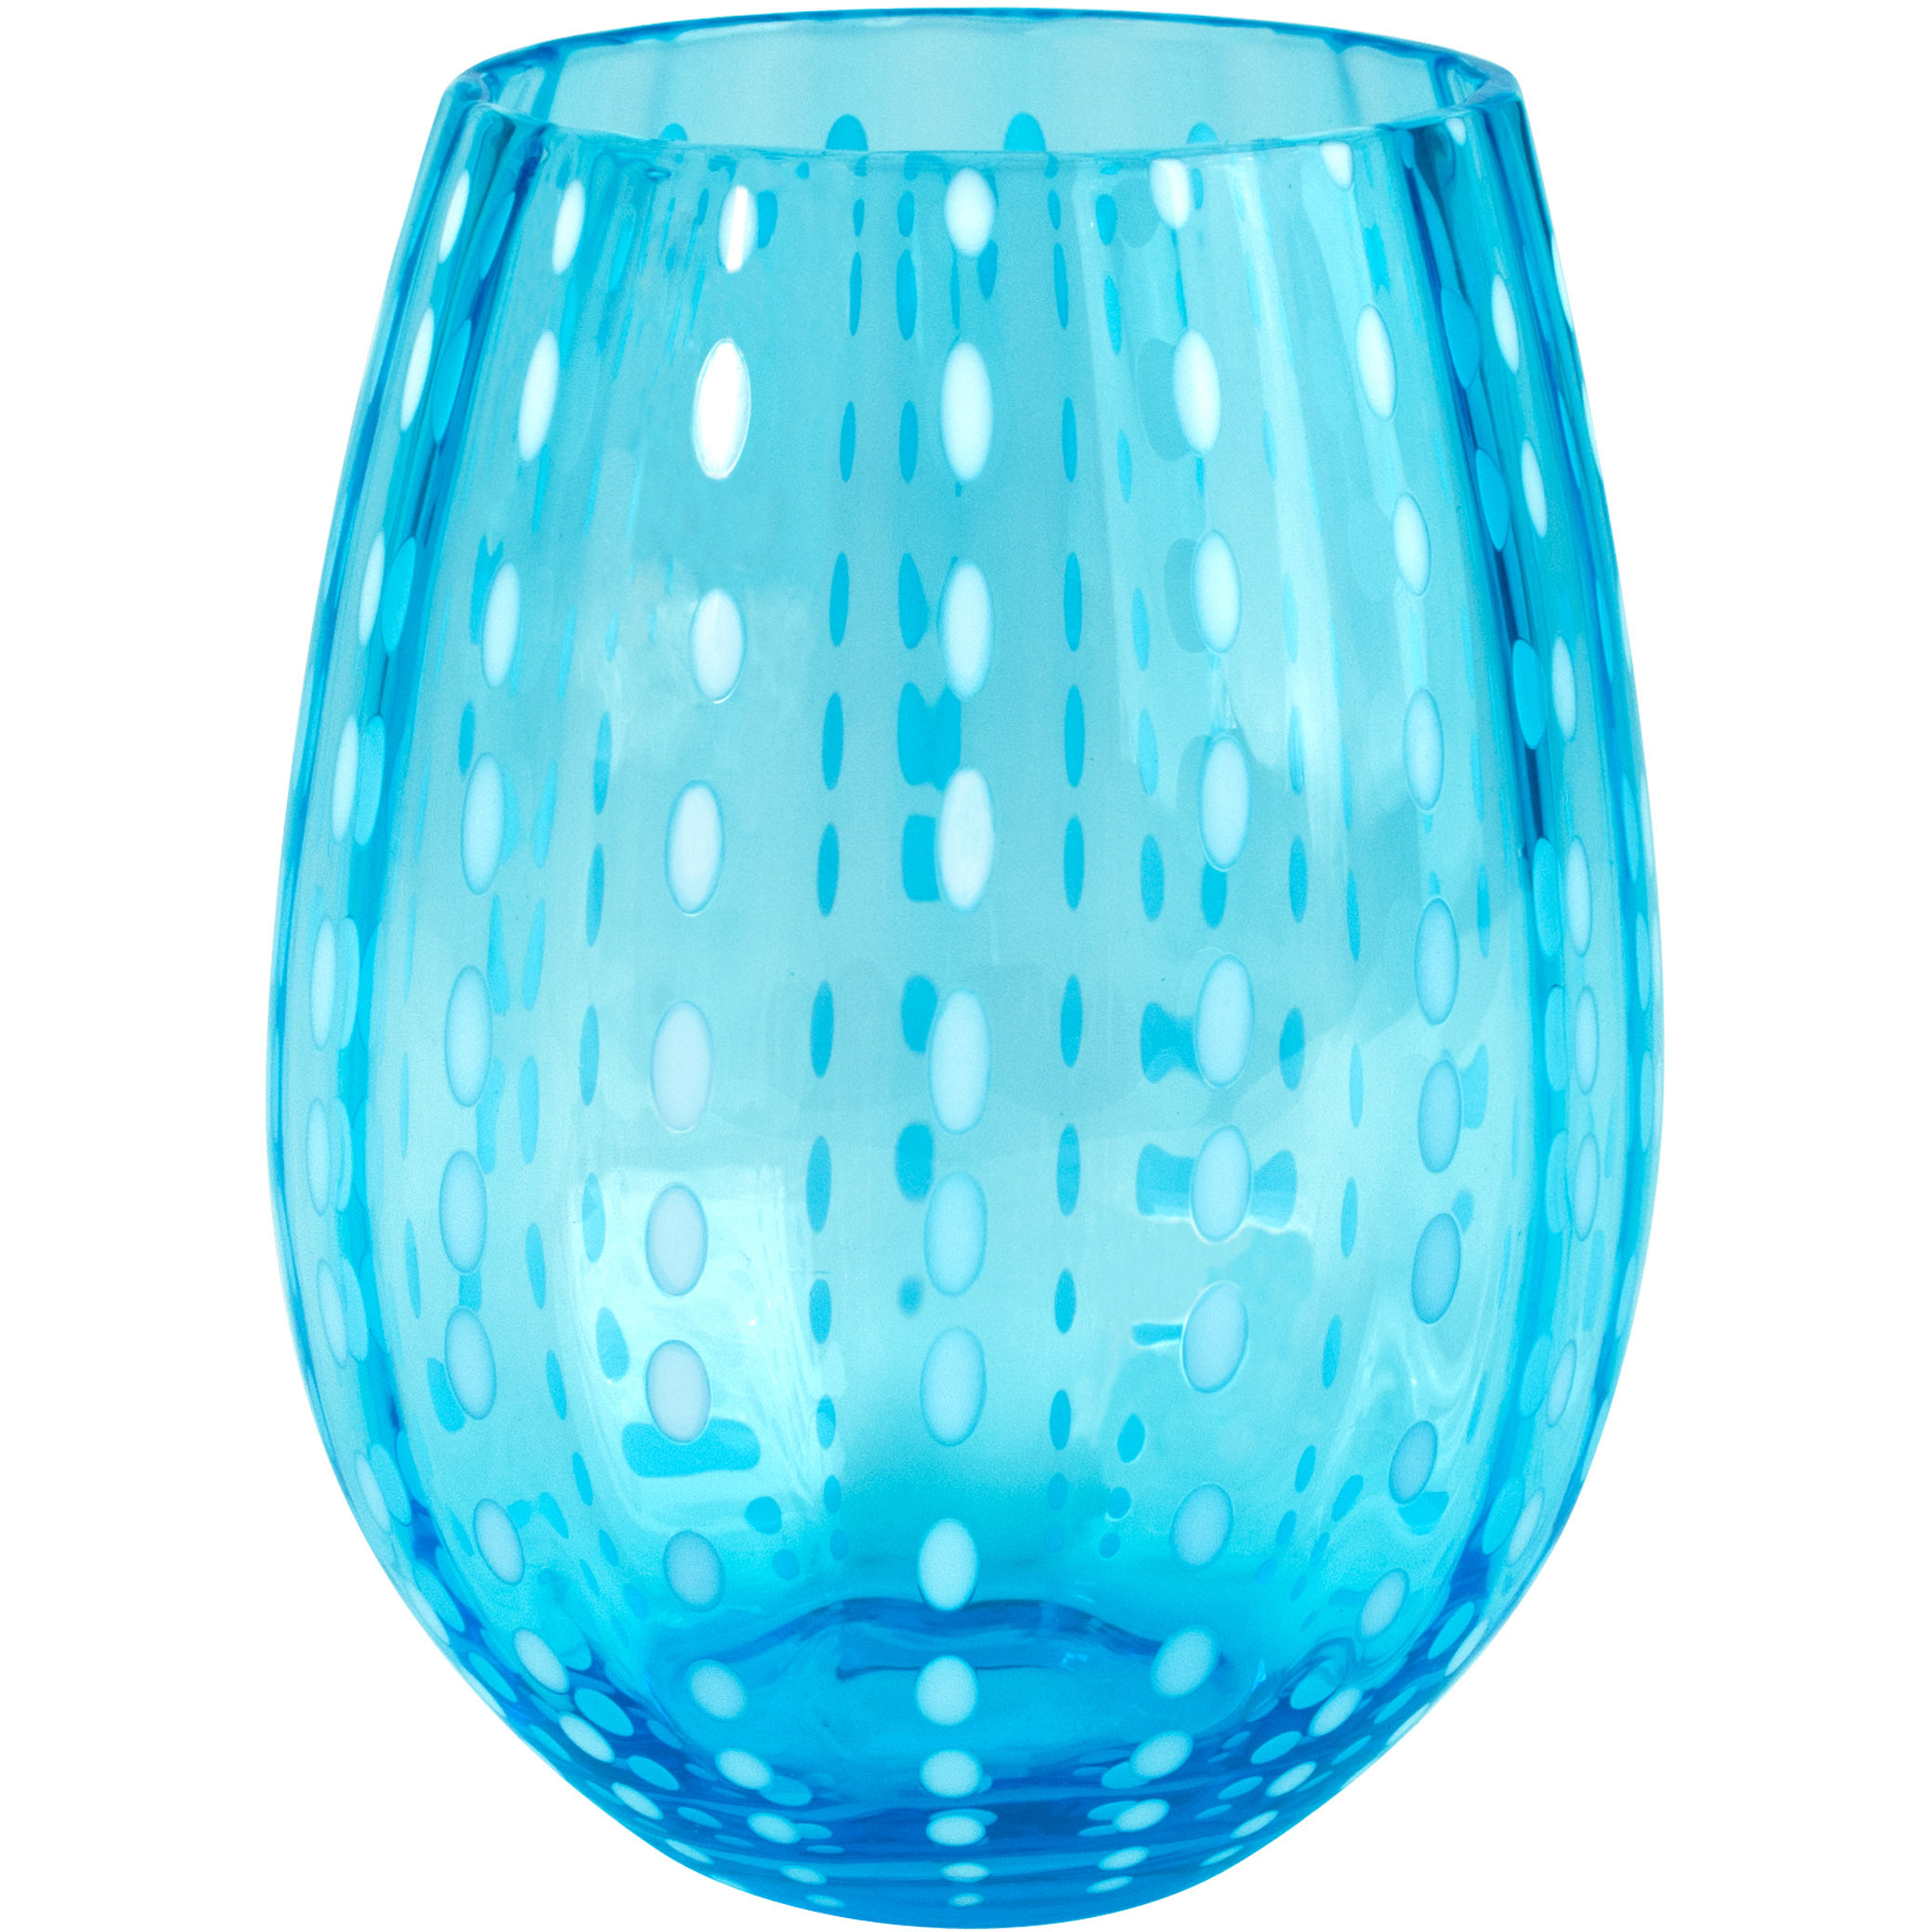 Artland Cambria Turquoise Stemless Tumbler Drinking Glass, 17 Ounce